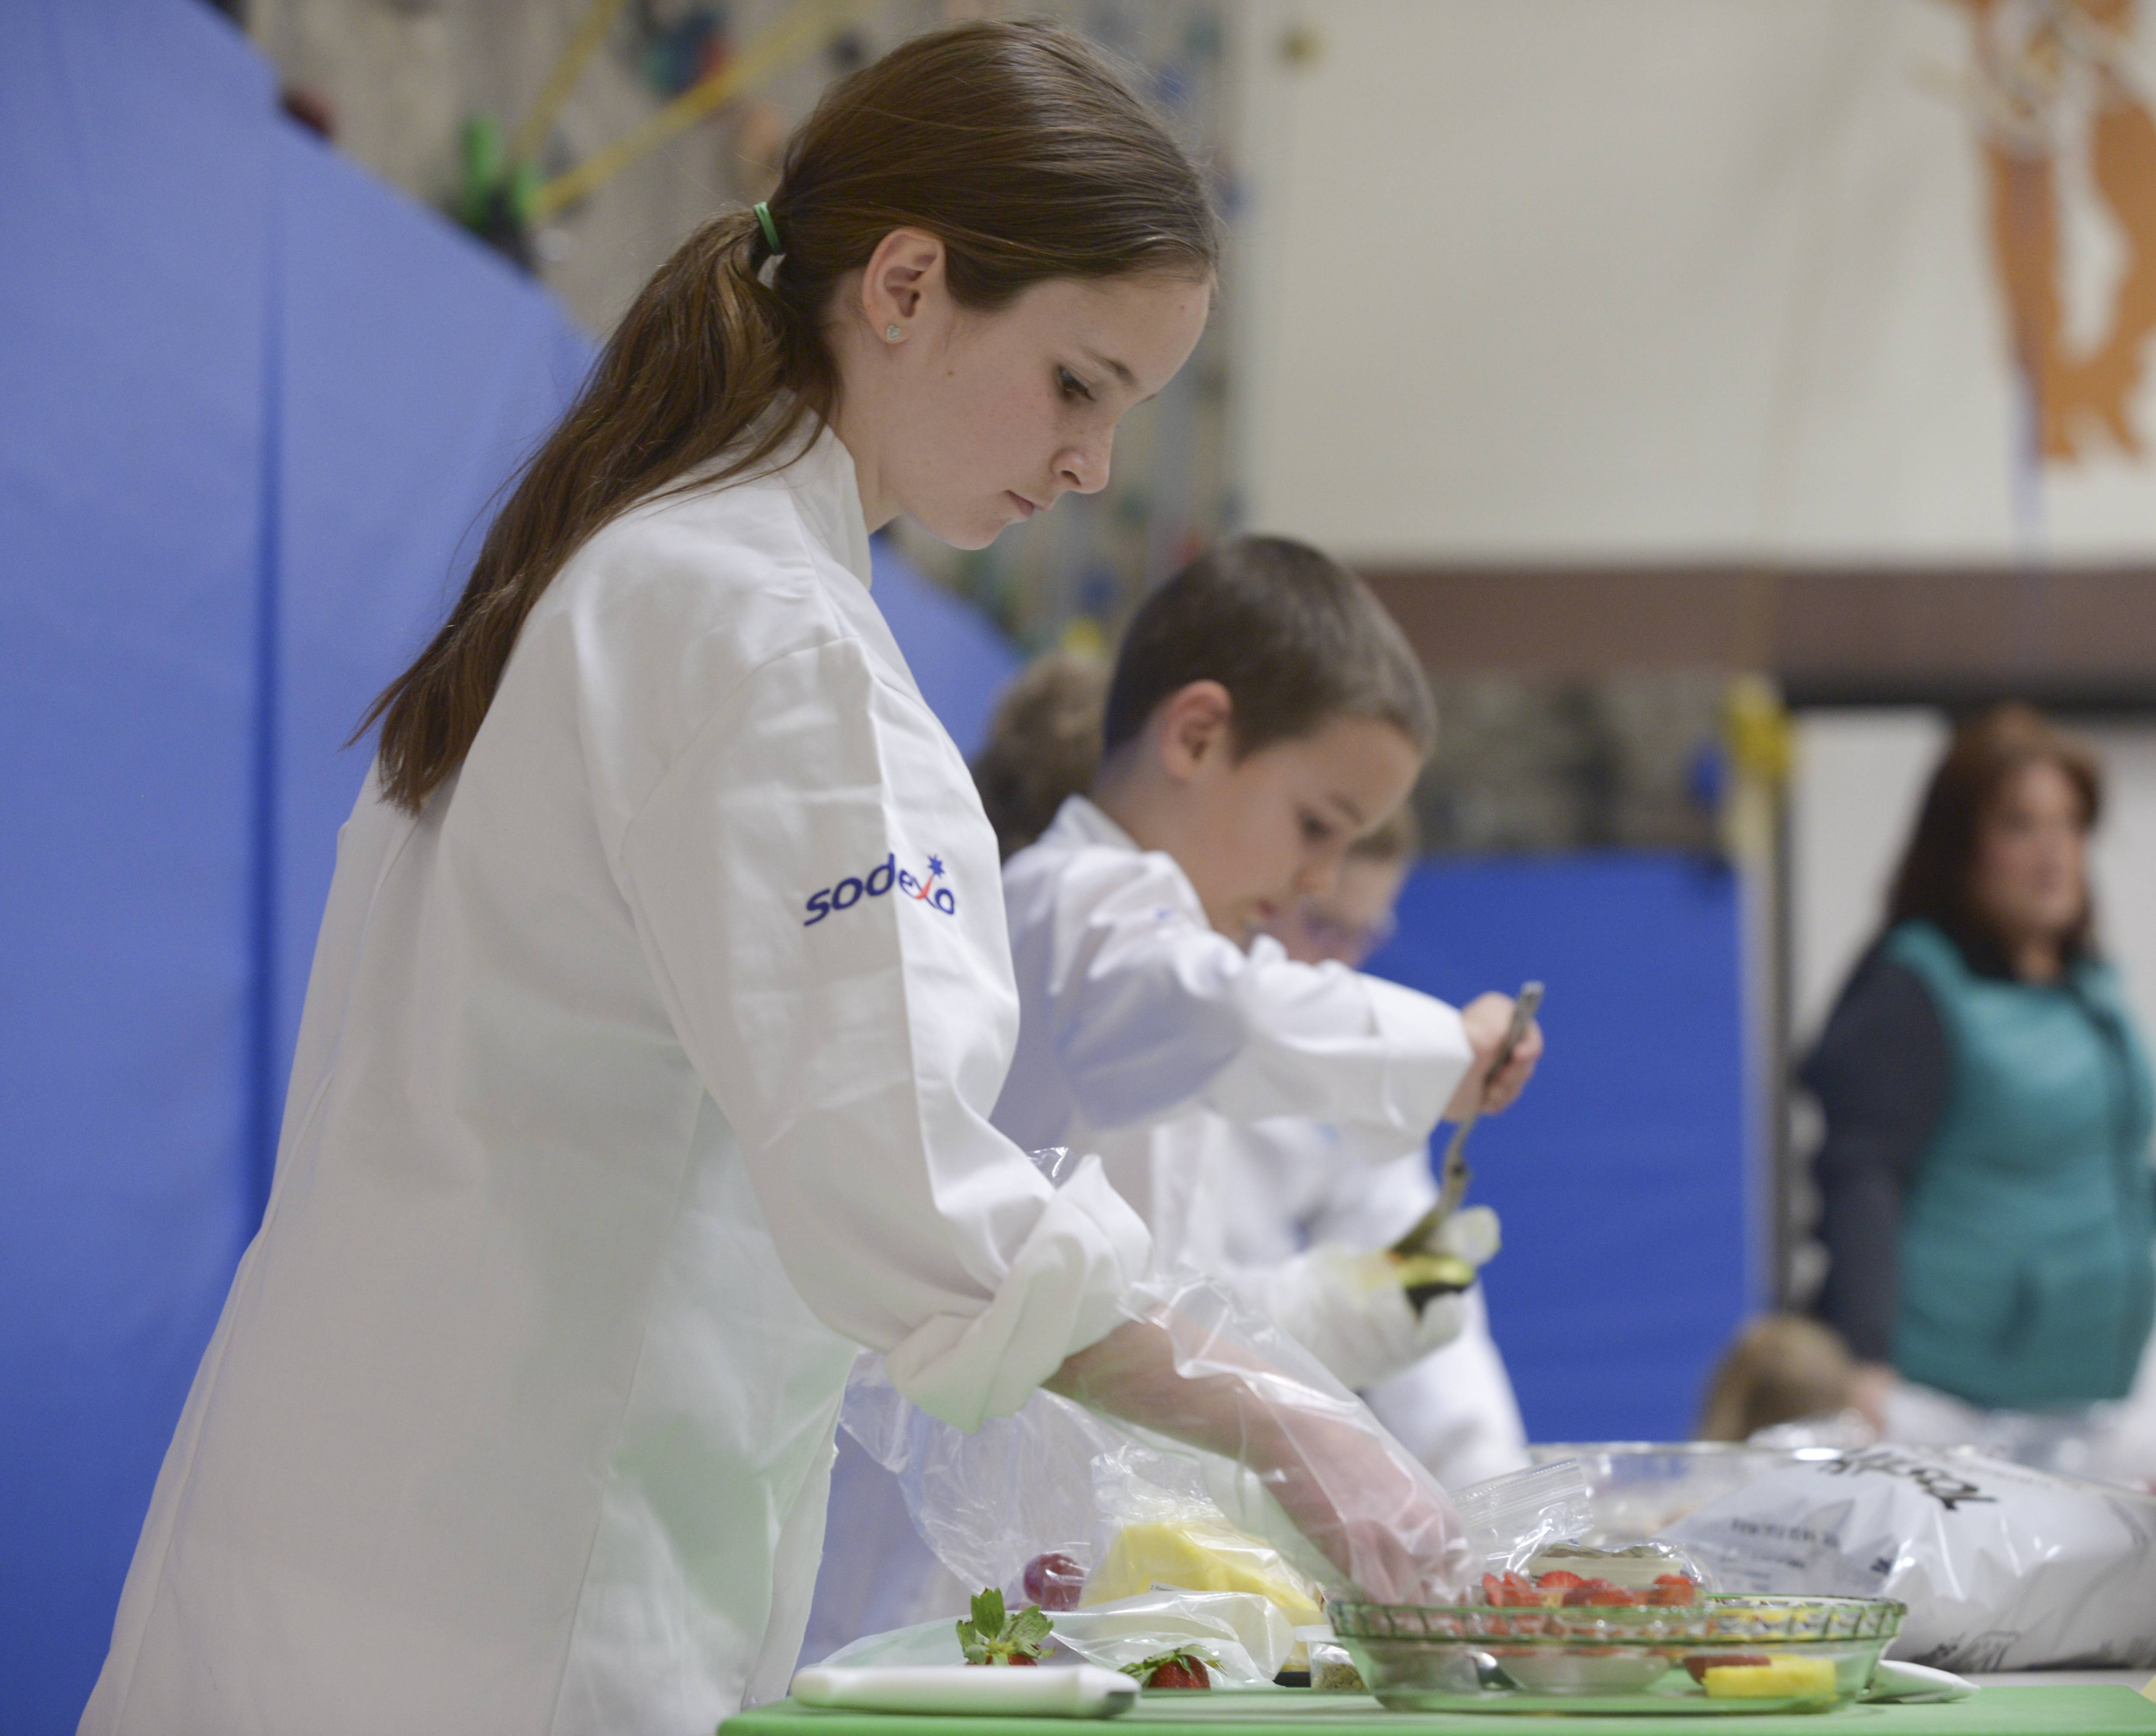 Scott Elementary fifth-grader Nora Johnson-Guy, 11 of Naperville, creates Fruity Faces on Wednesday during the Future Chefs Challenge sponsored by Sodexo.